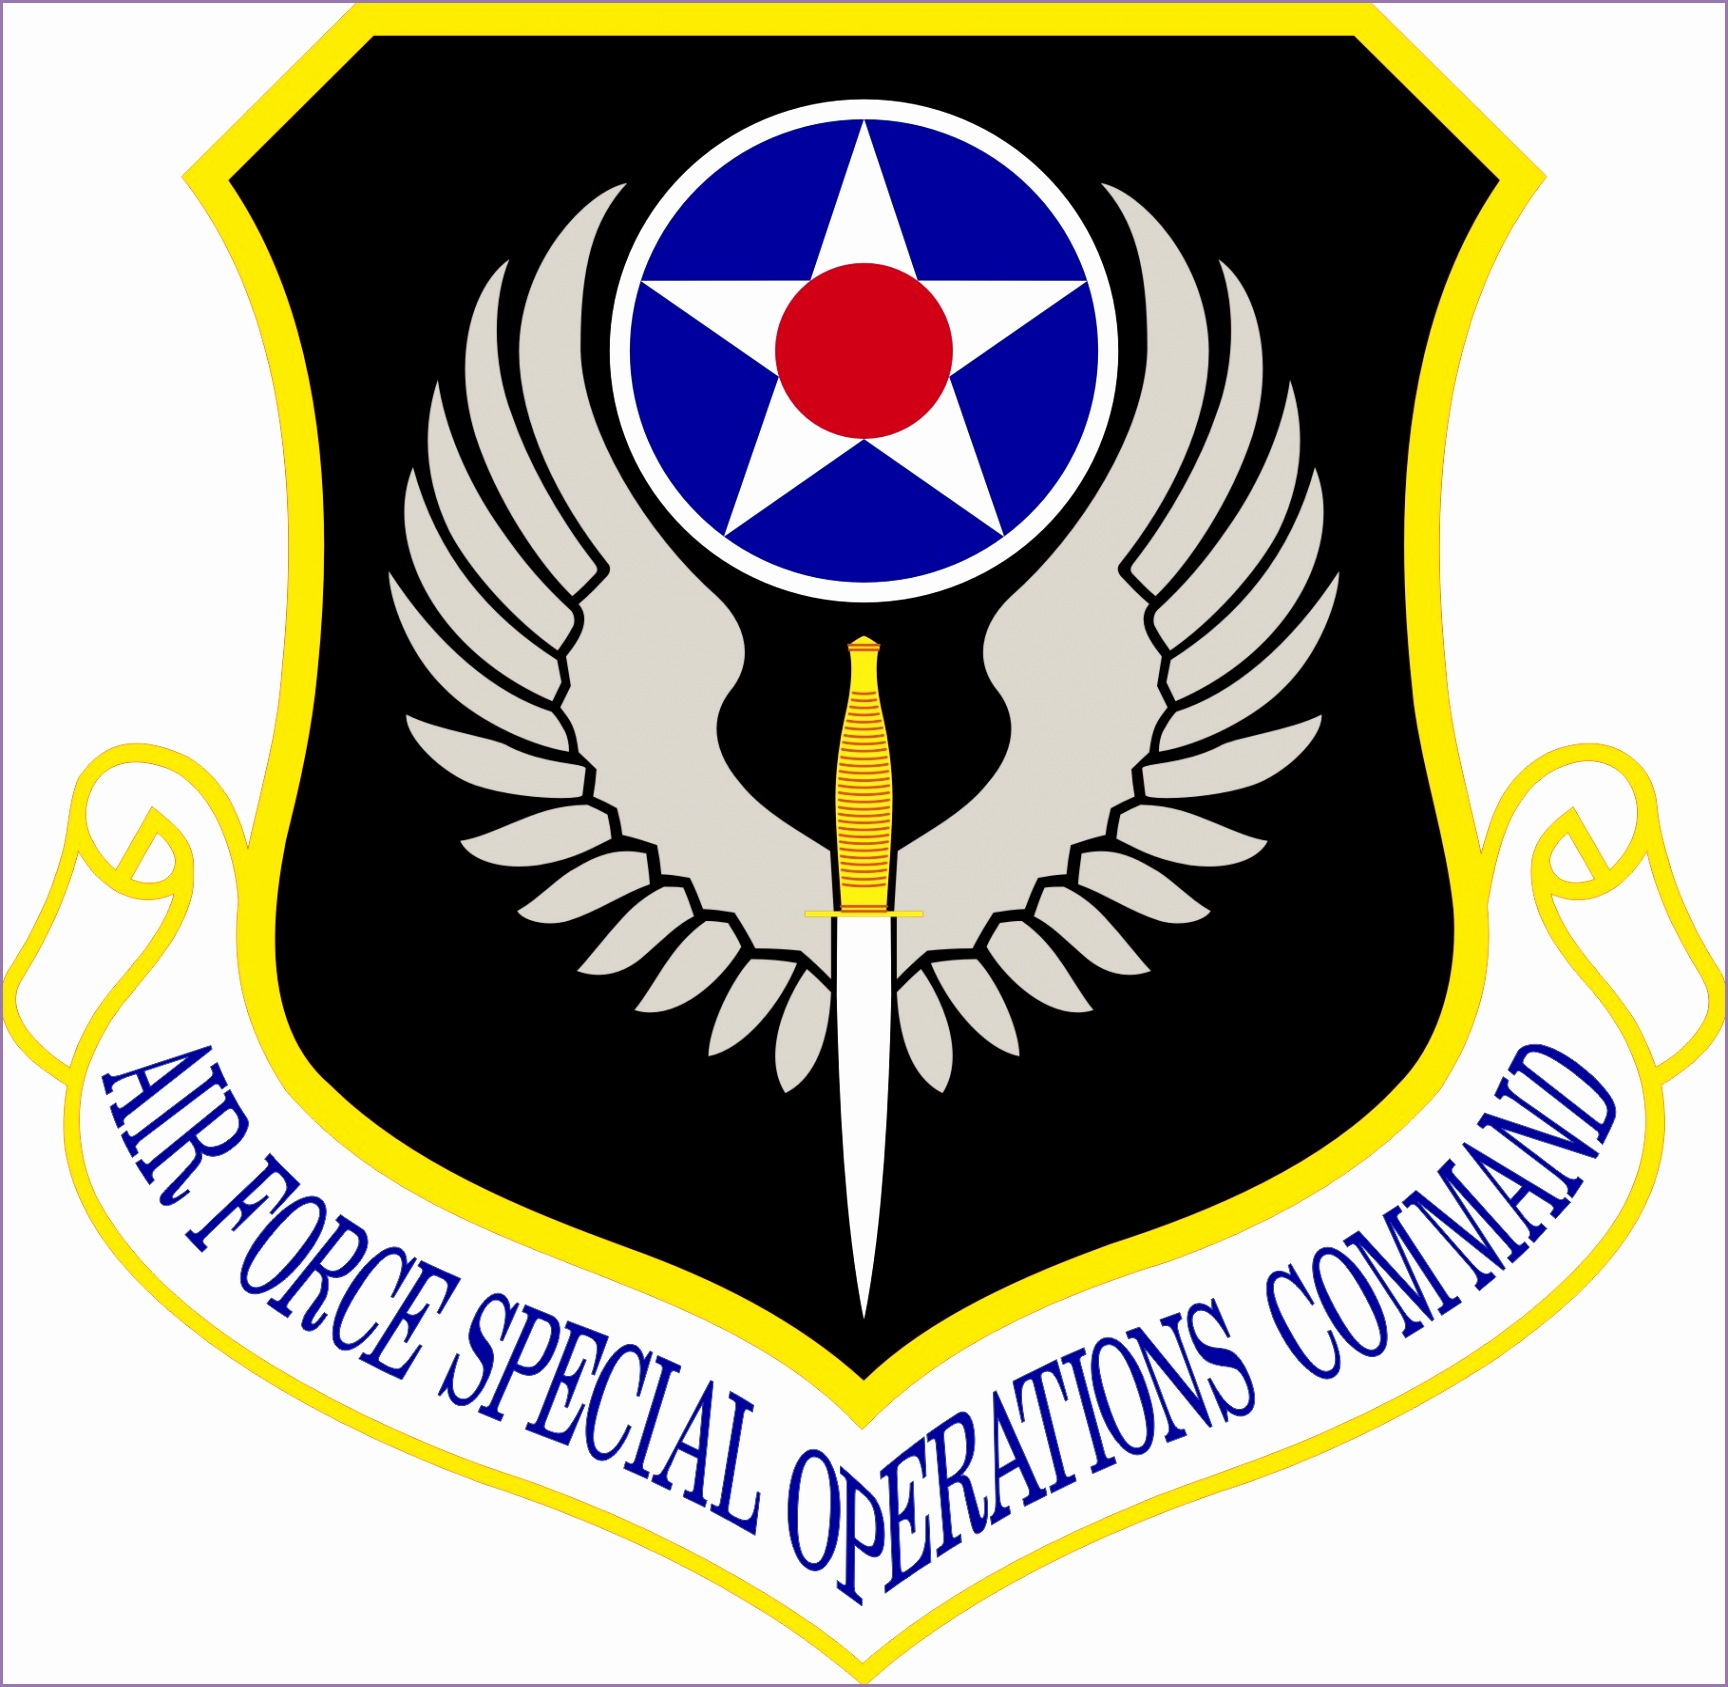 usso us special operations mand